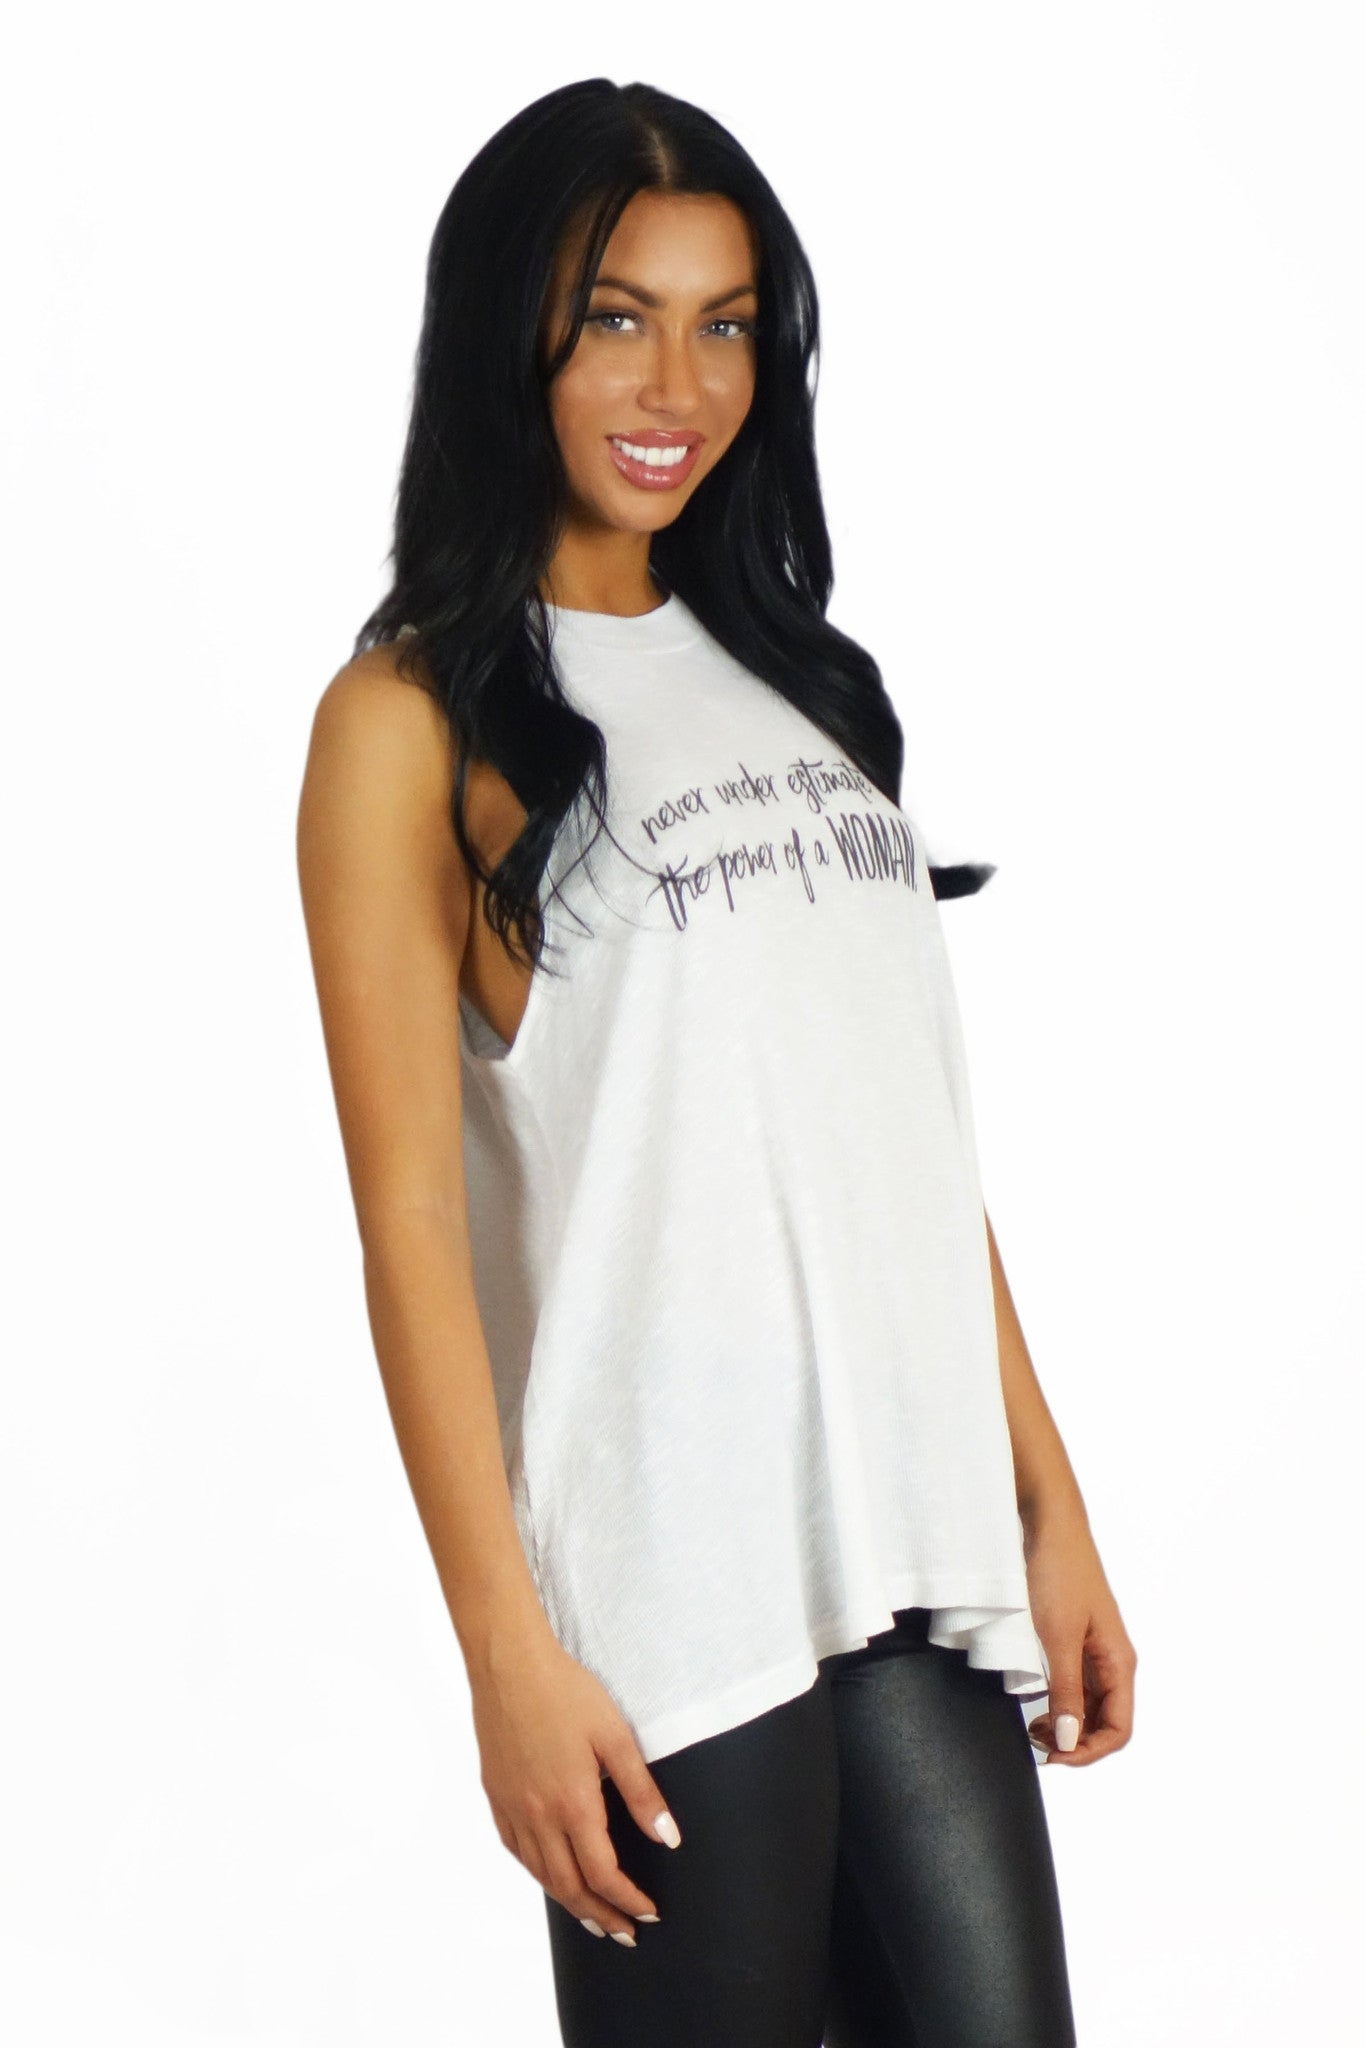 Royal Rabbit Power Of A Woman Muscle Tee - TOPS - ROYAL RABBIT - Free Vibrationz - 3